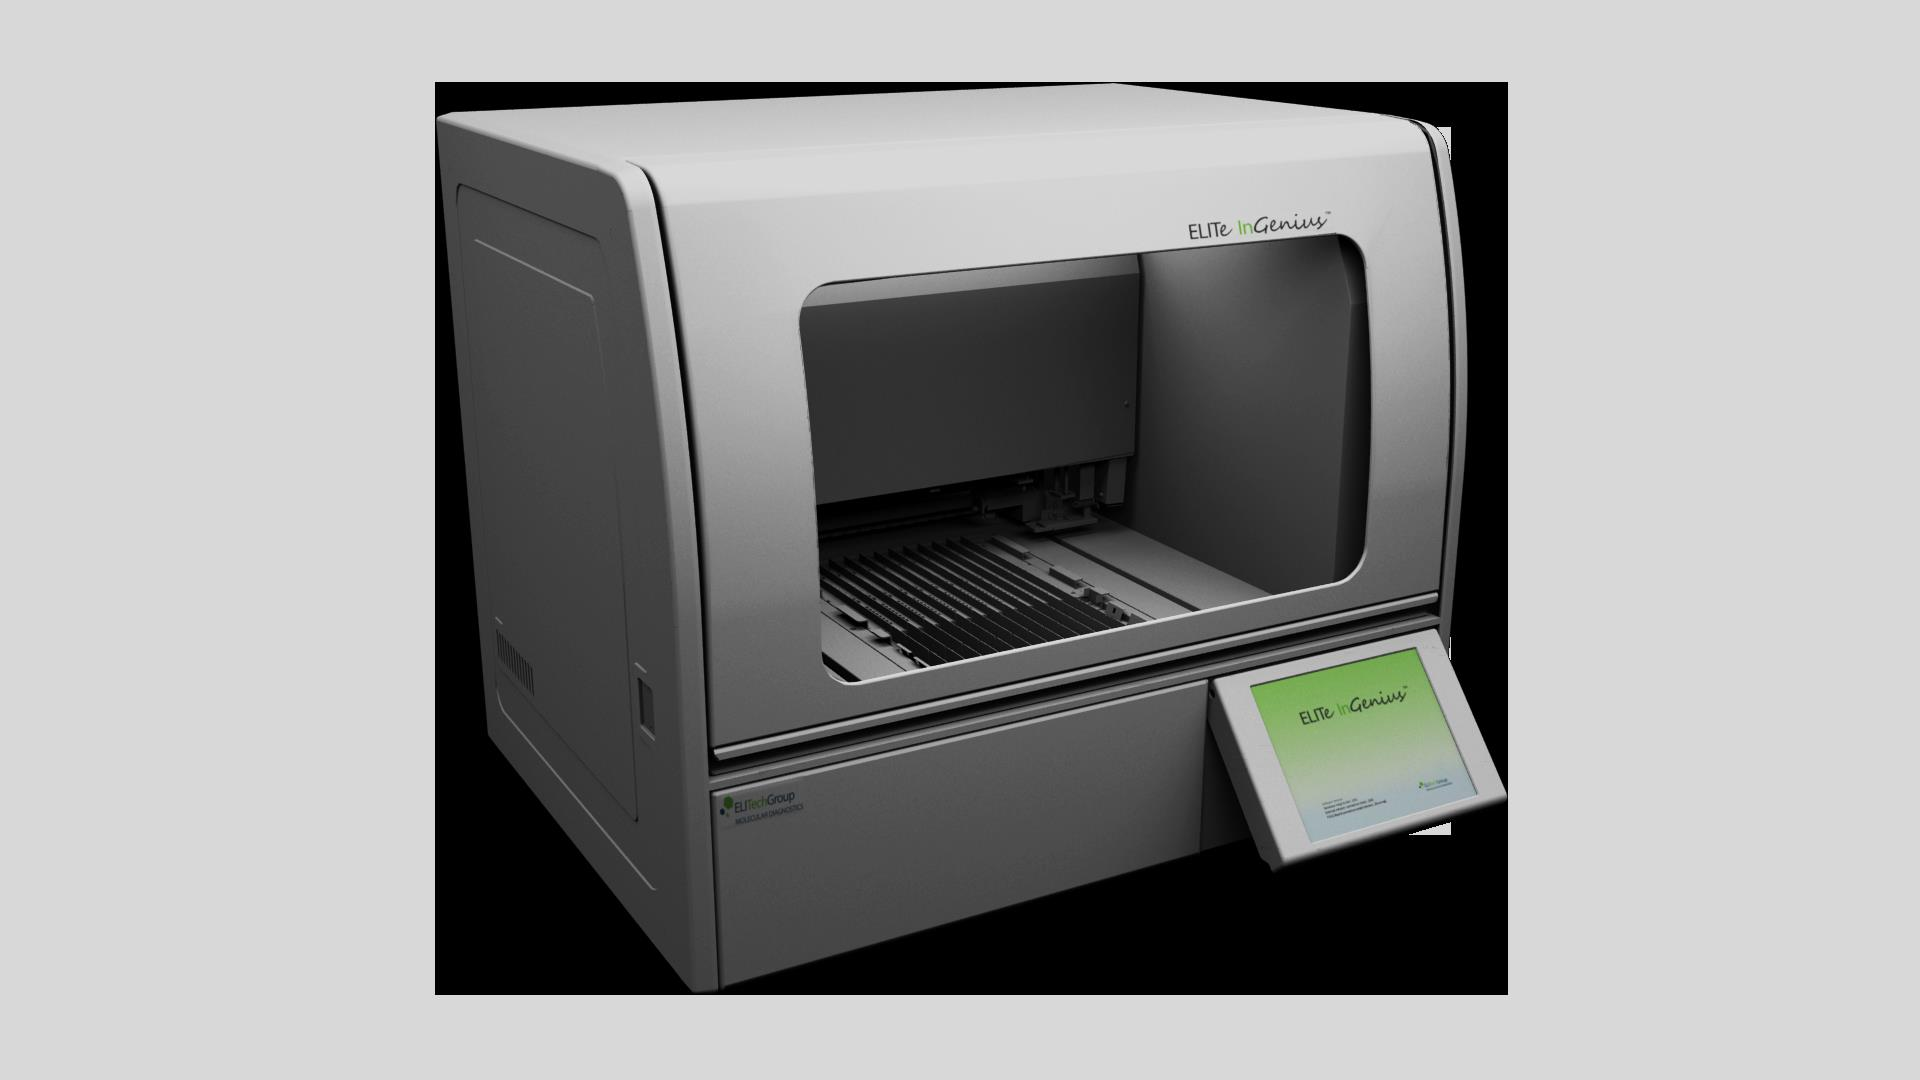 The ELITe InGenius fully automated molecular diagnostics system